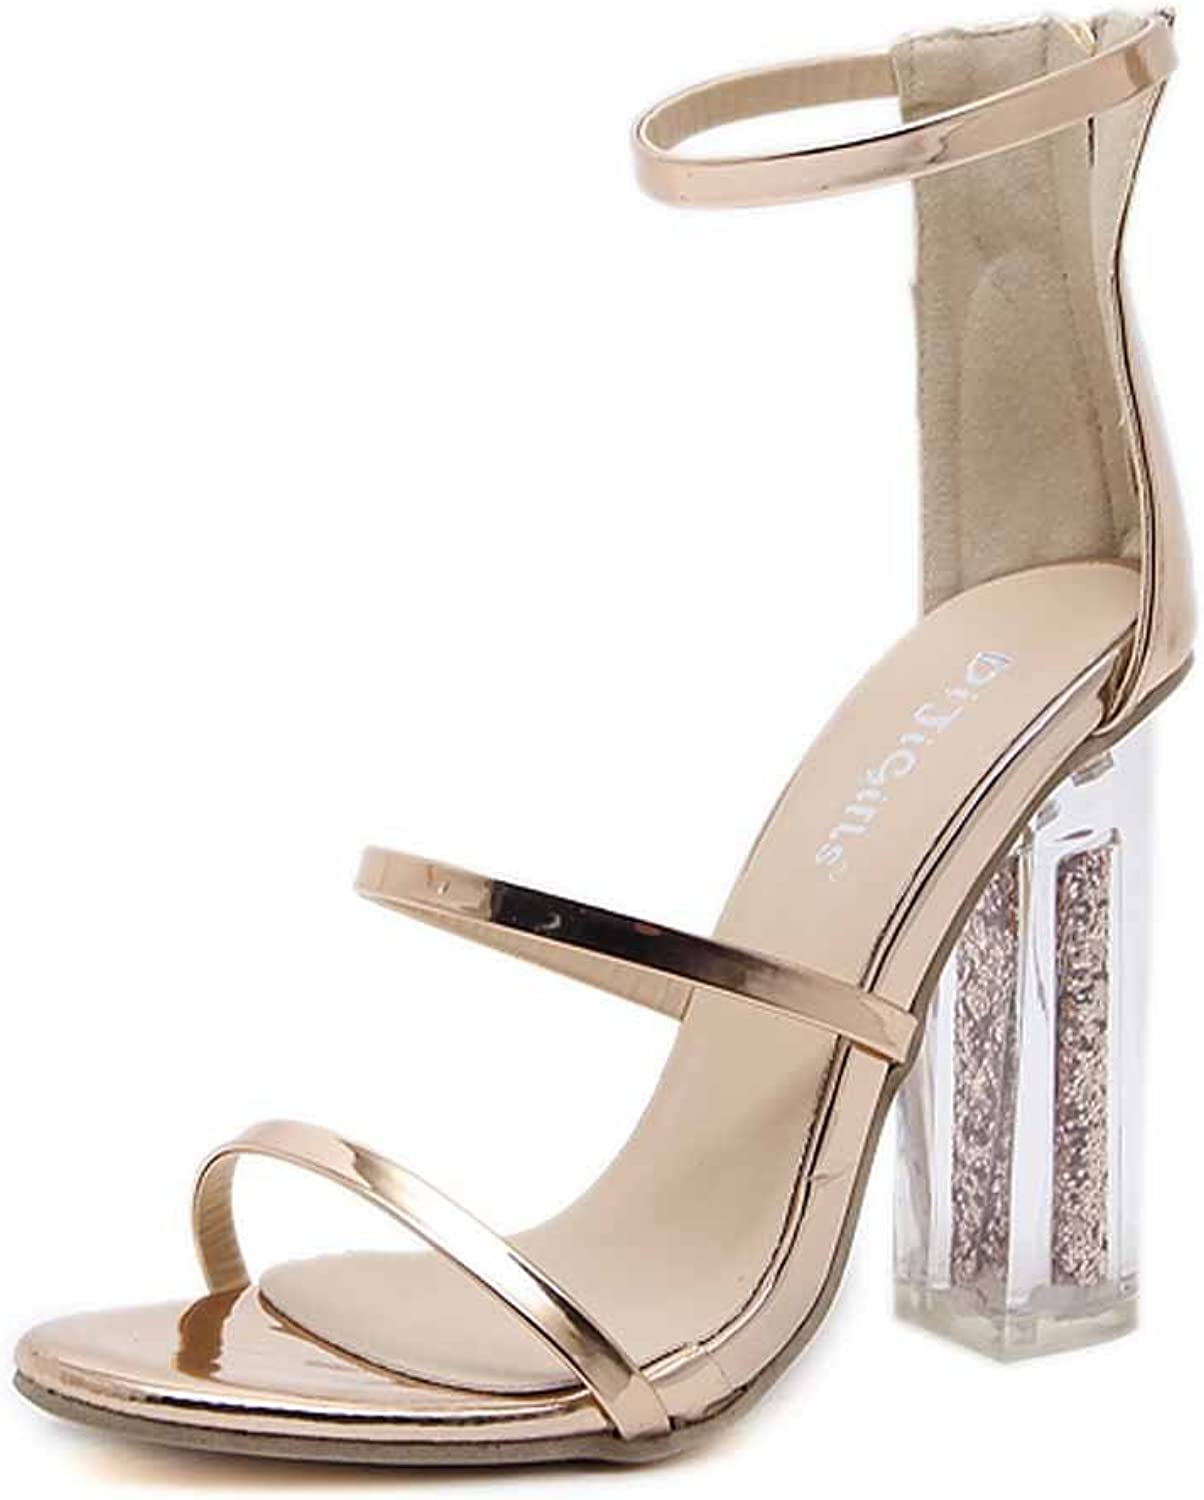 Women Ankle Strap Pumps Open-toe Transparent 12 CM High-heel Hollow Sequins Female Sandals